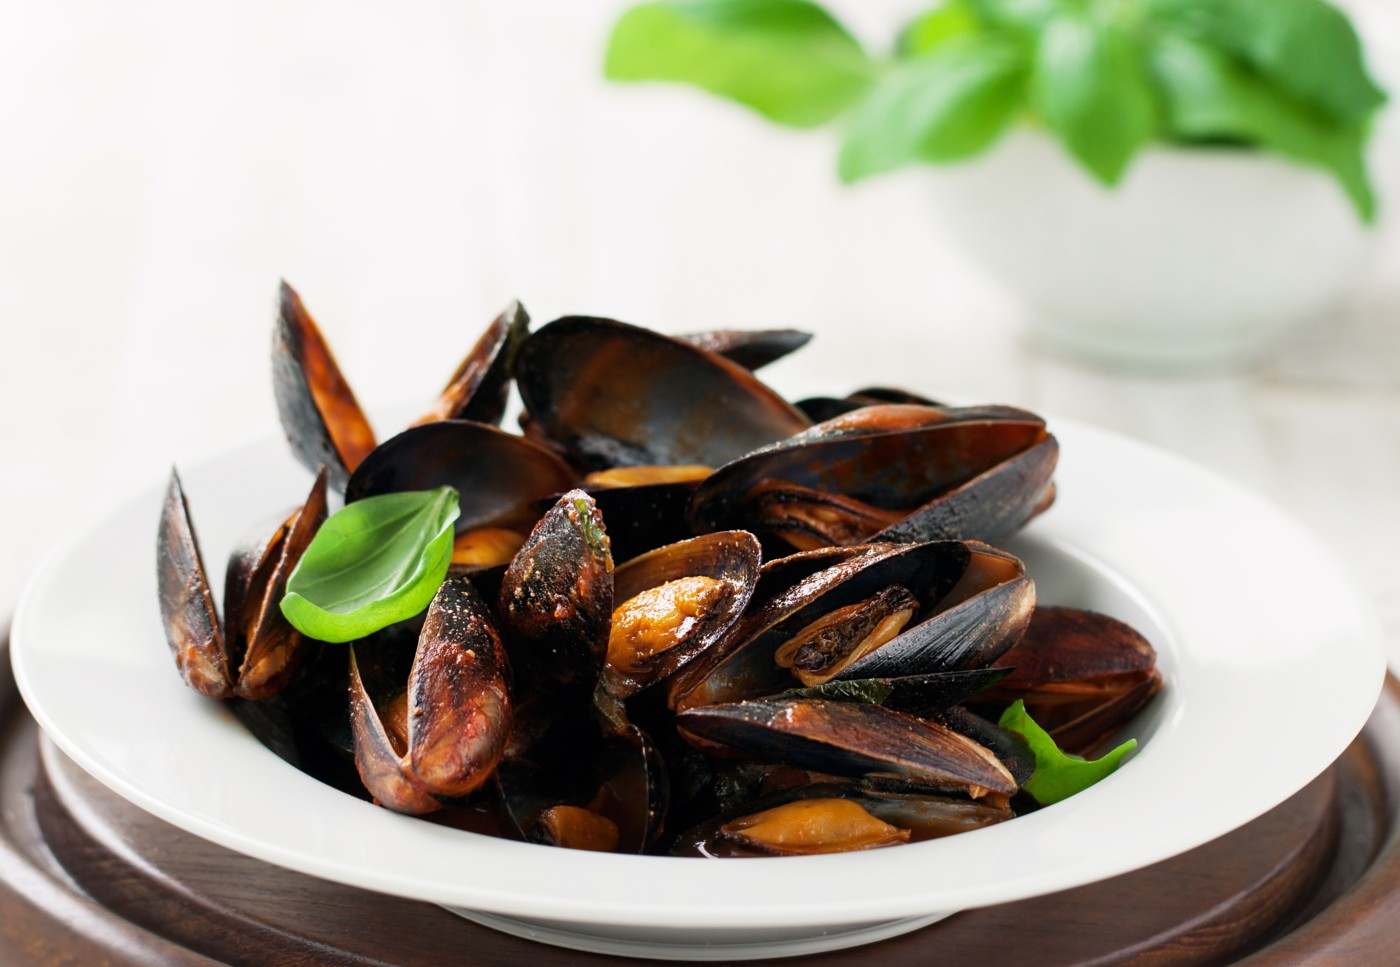 Homemade cooked mussels with garlic, tomato sauce, italian herbs, white wine and fresh basil in a plate, closeup